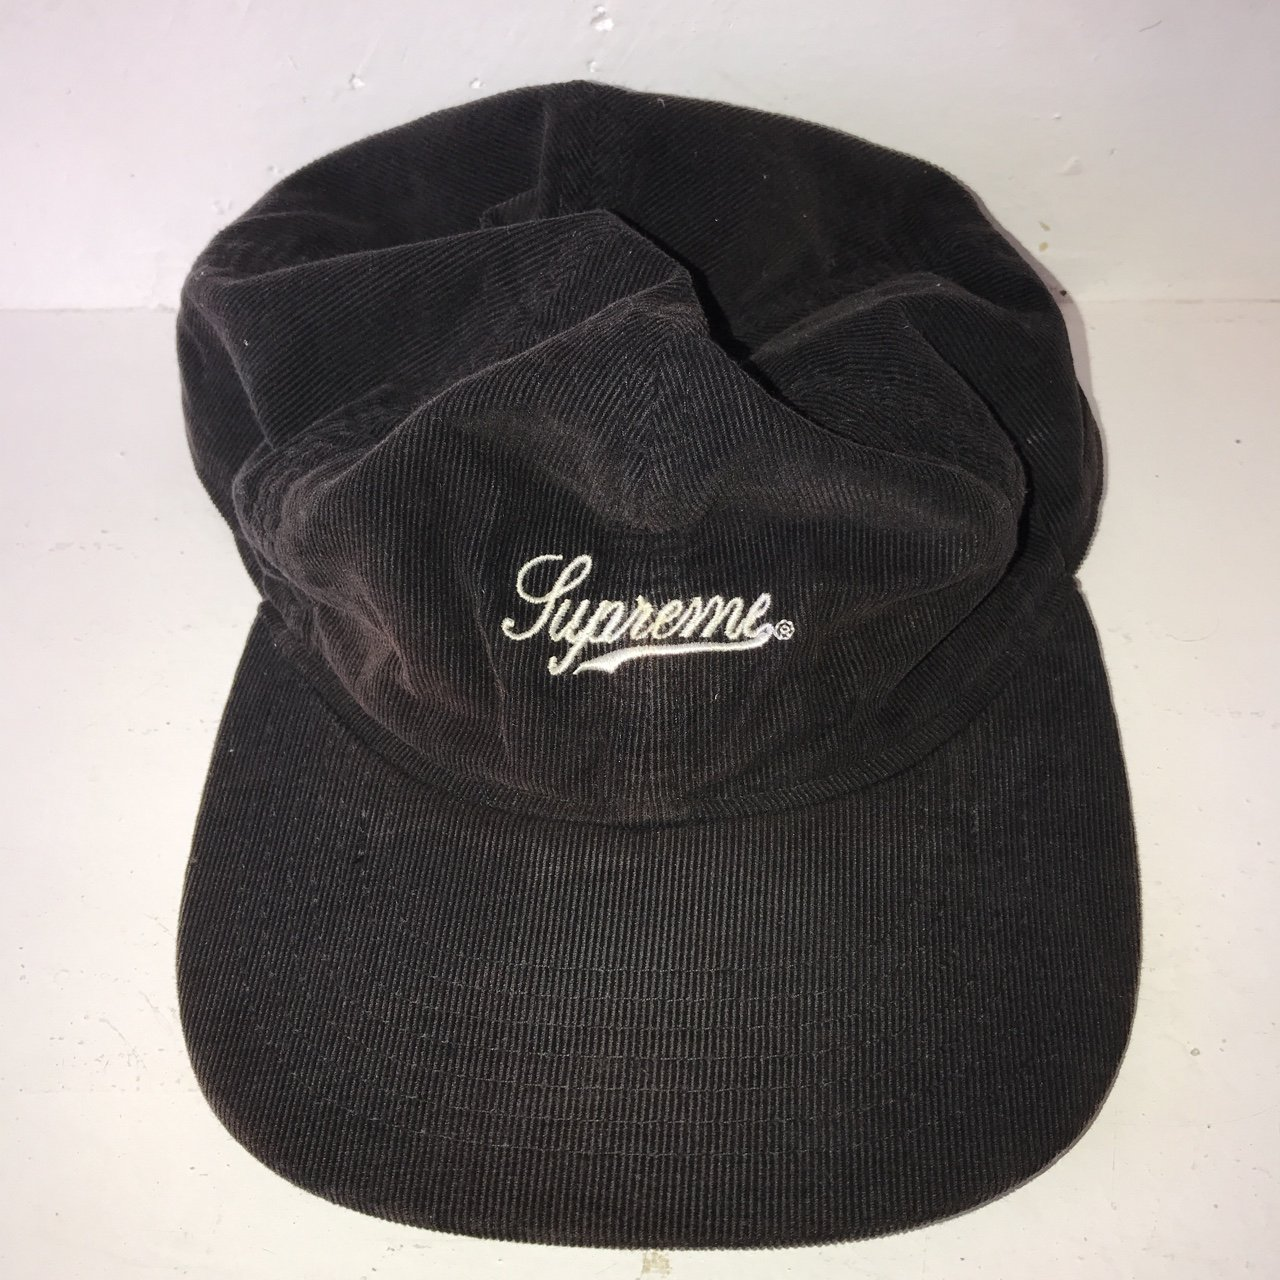 Supreme hat - Depop 5986db9608f0